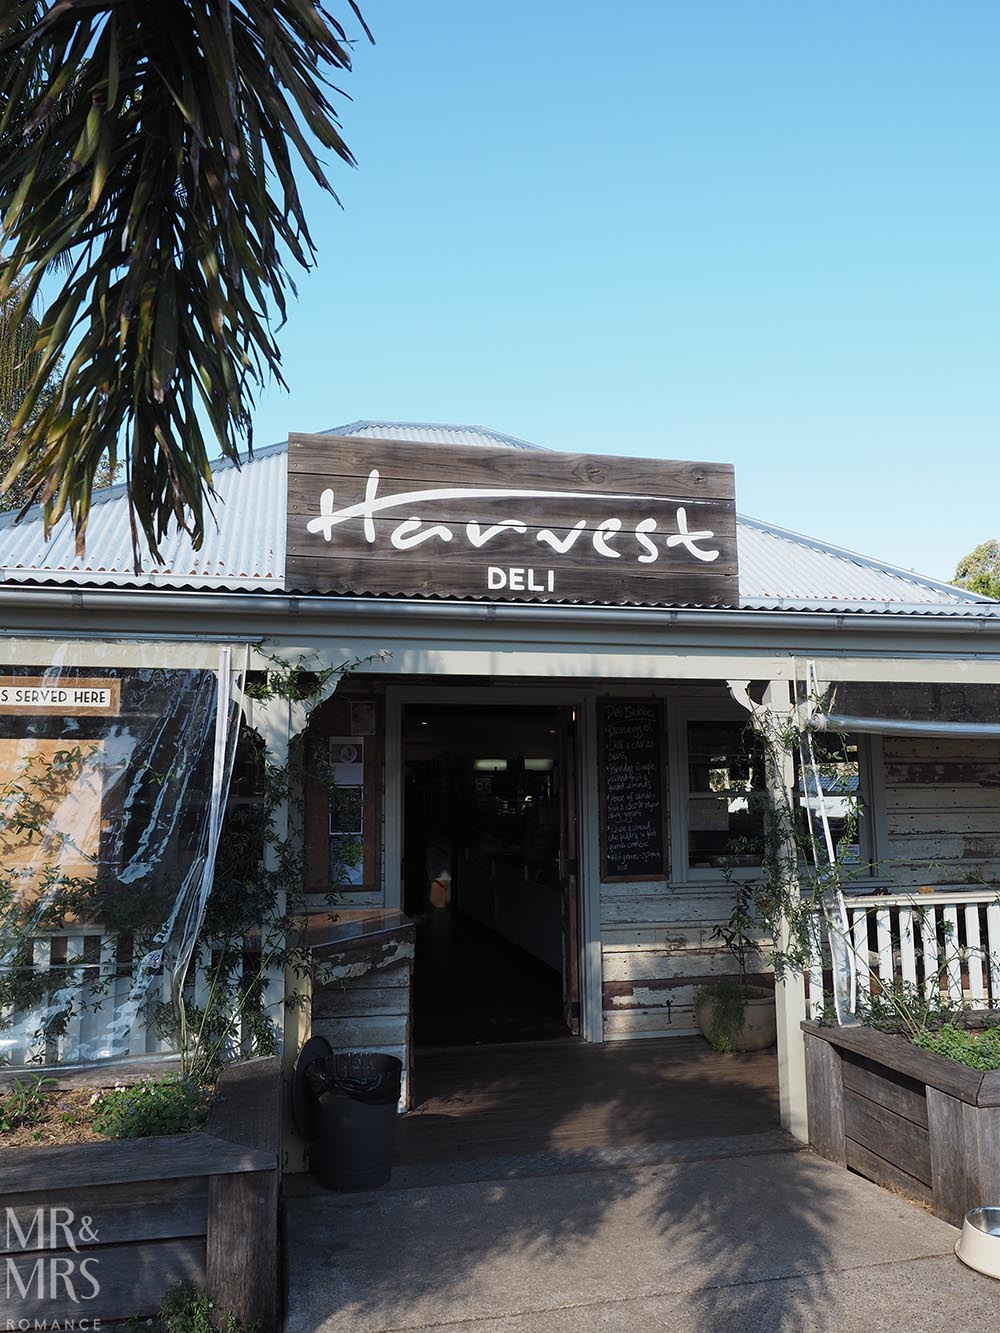 NSW country towns to visit - Harvest Newrybar